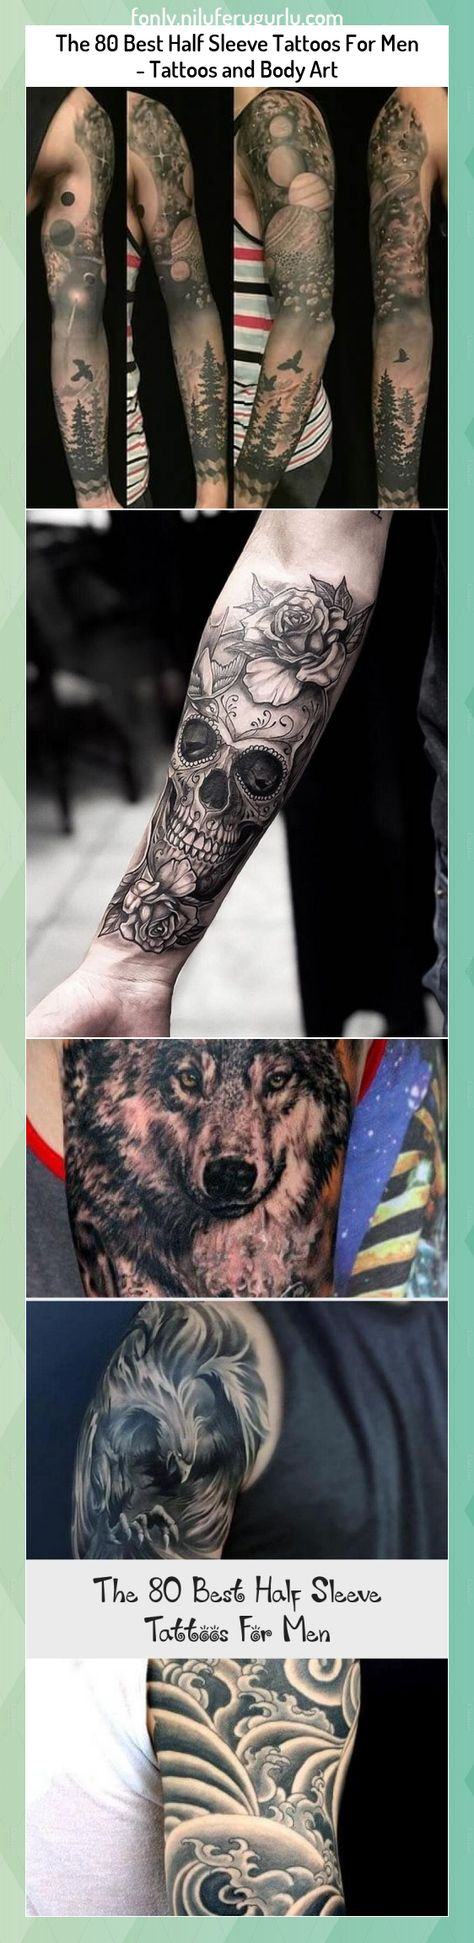 The 80 Best Half Sleeve Tattoos For Men - Tattoos and Body Art #The #Best #Half #Sleeve #Tattoos #For #Men #Tattoos #and #Body #Art